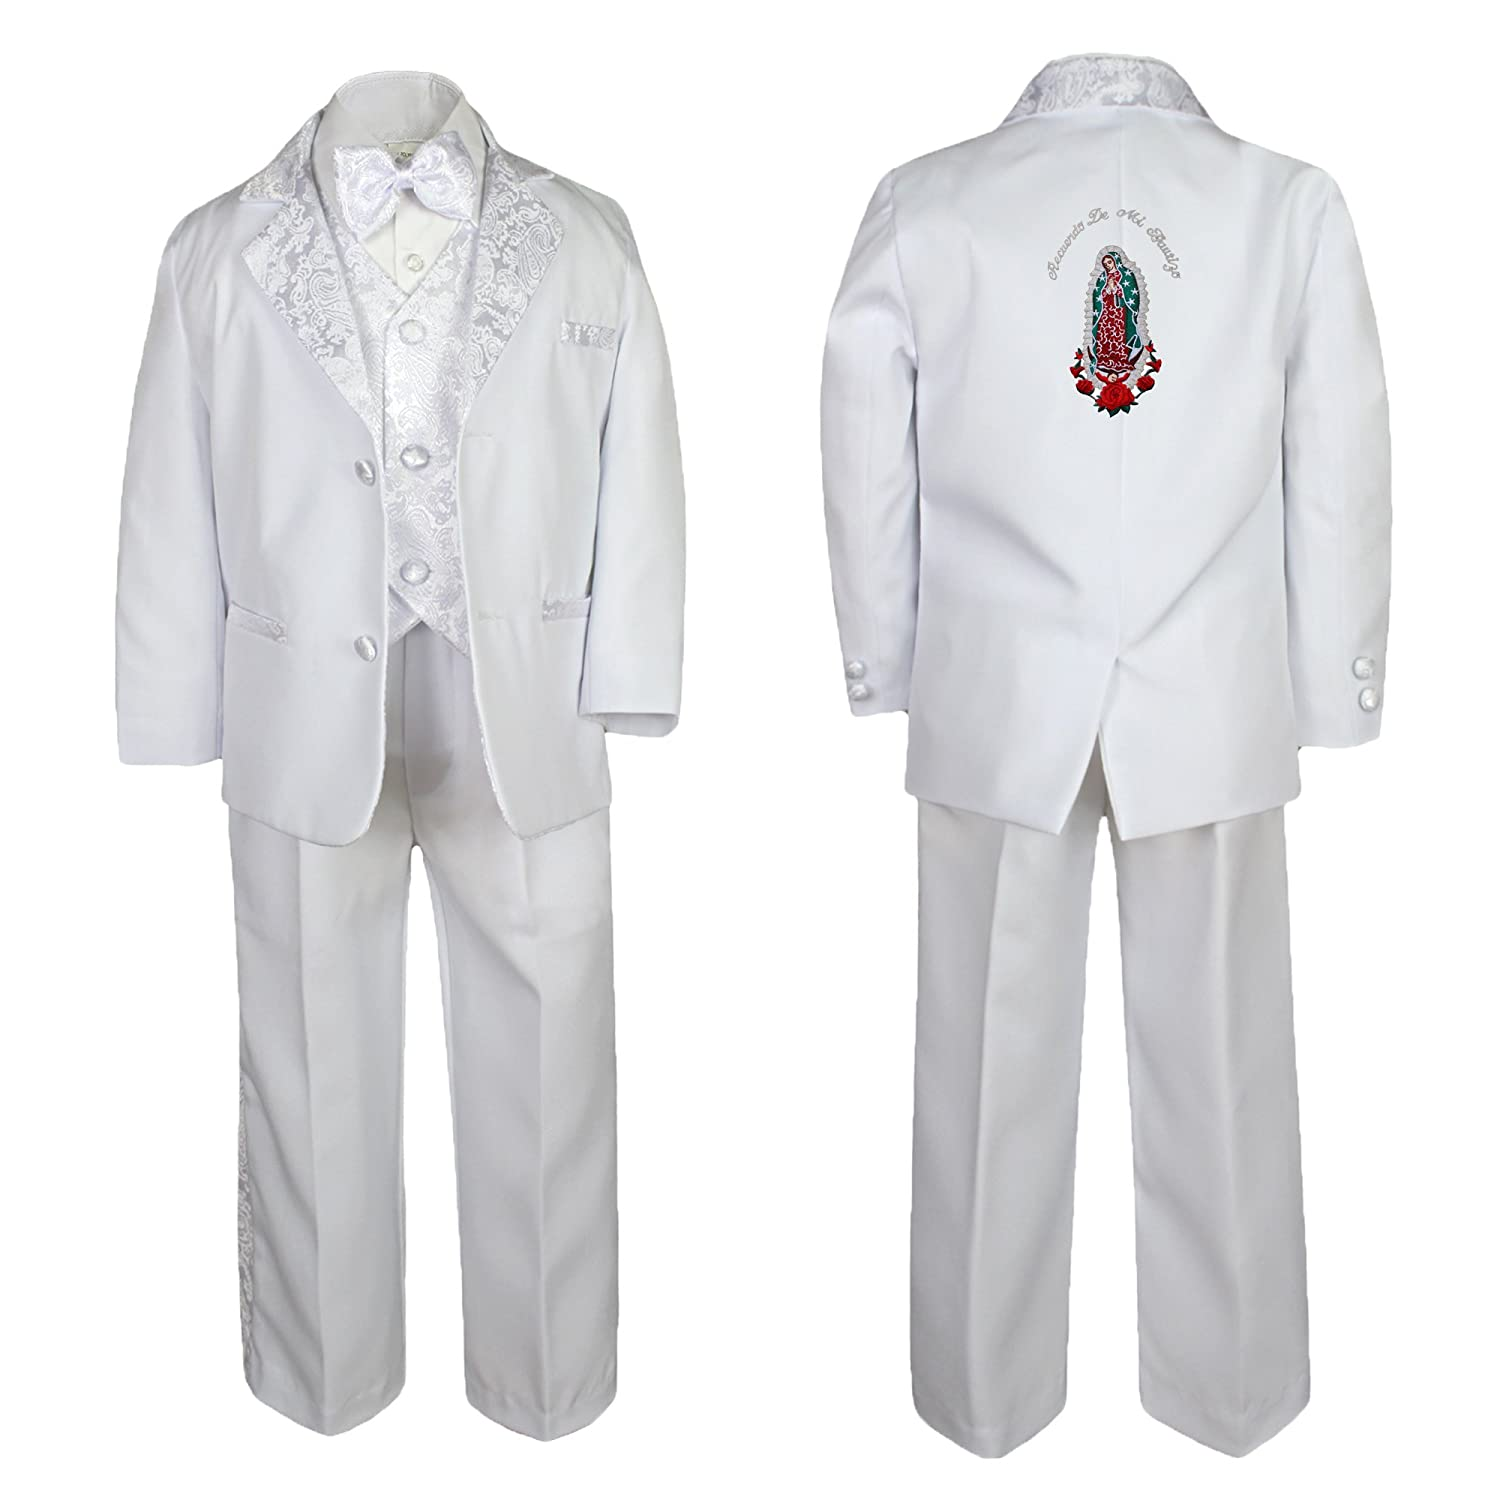 Unotux Baby Boy Teen Baptism Formal White Paisley Suit Silver Guadalupe On Back SM-20